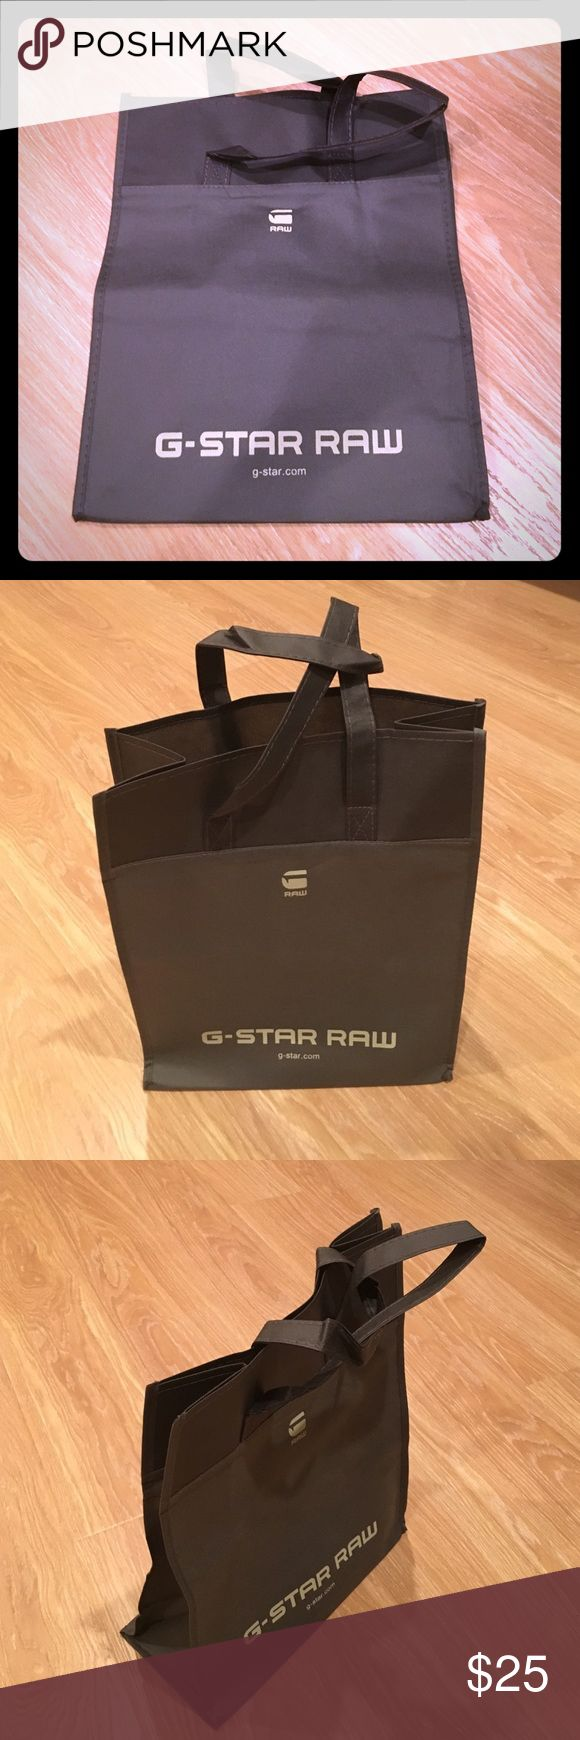 """G-STAR RAW SHOPPING BAG G-star Raw shopping bag. Height: 15 1/4"""" width:11.75"""" depth:6"""". Never been used. Perfect condition. G-Star Bags"""